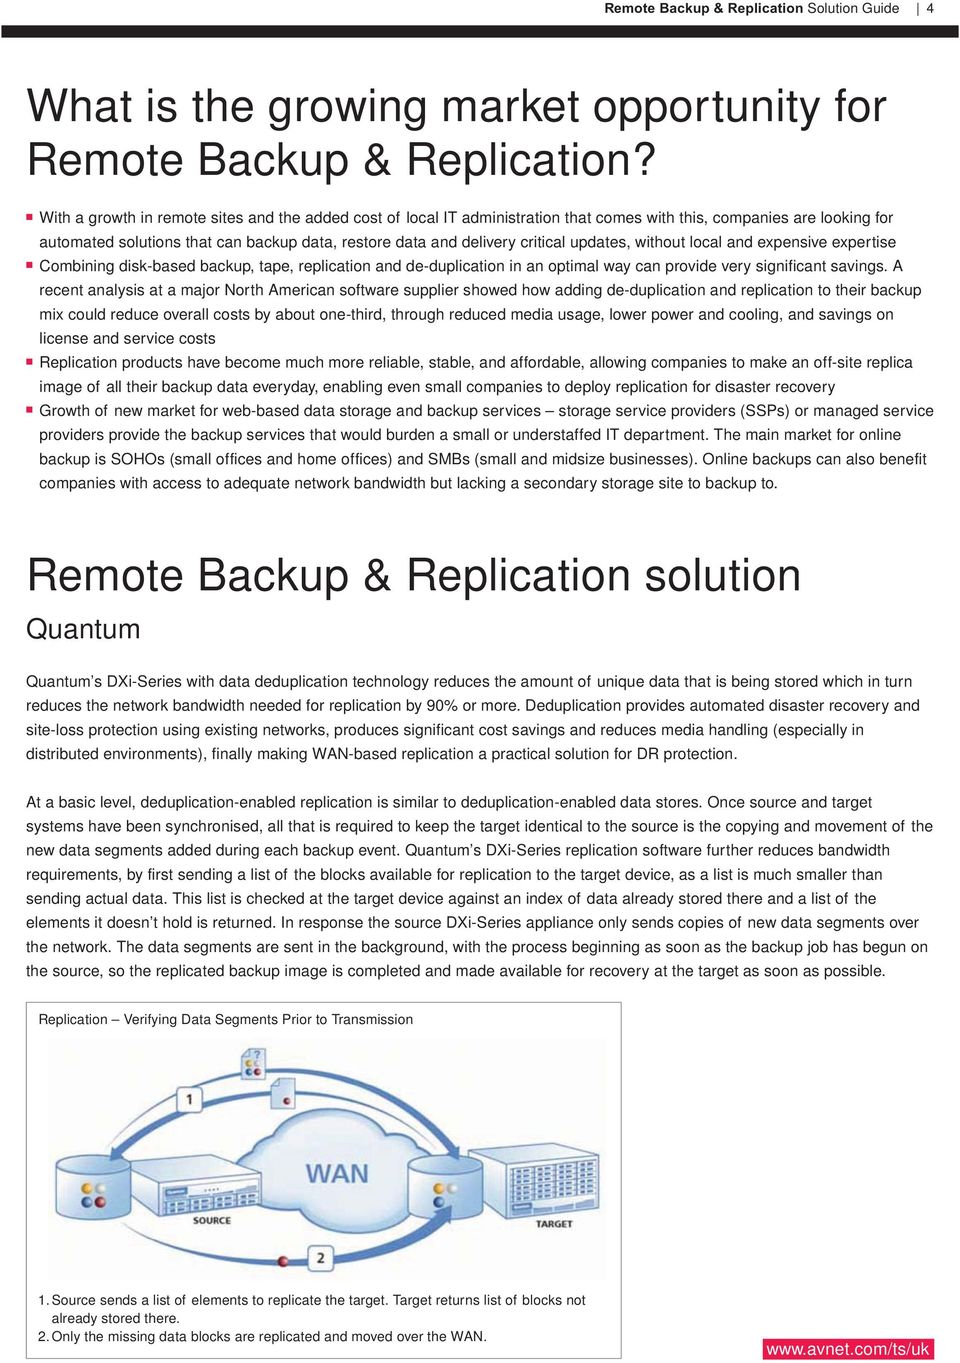 critical updates, without local and expensive expertise Combining disk-based backup, tape, replication and de-duplication in an optimal way can provide very significant savings.